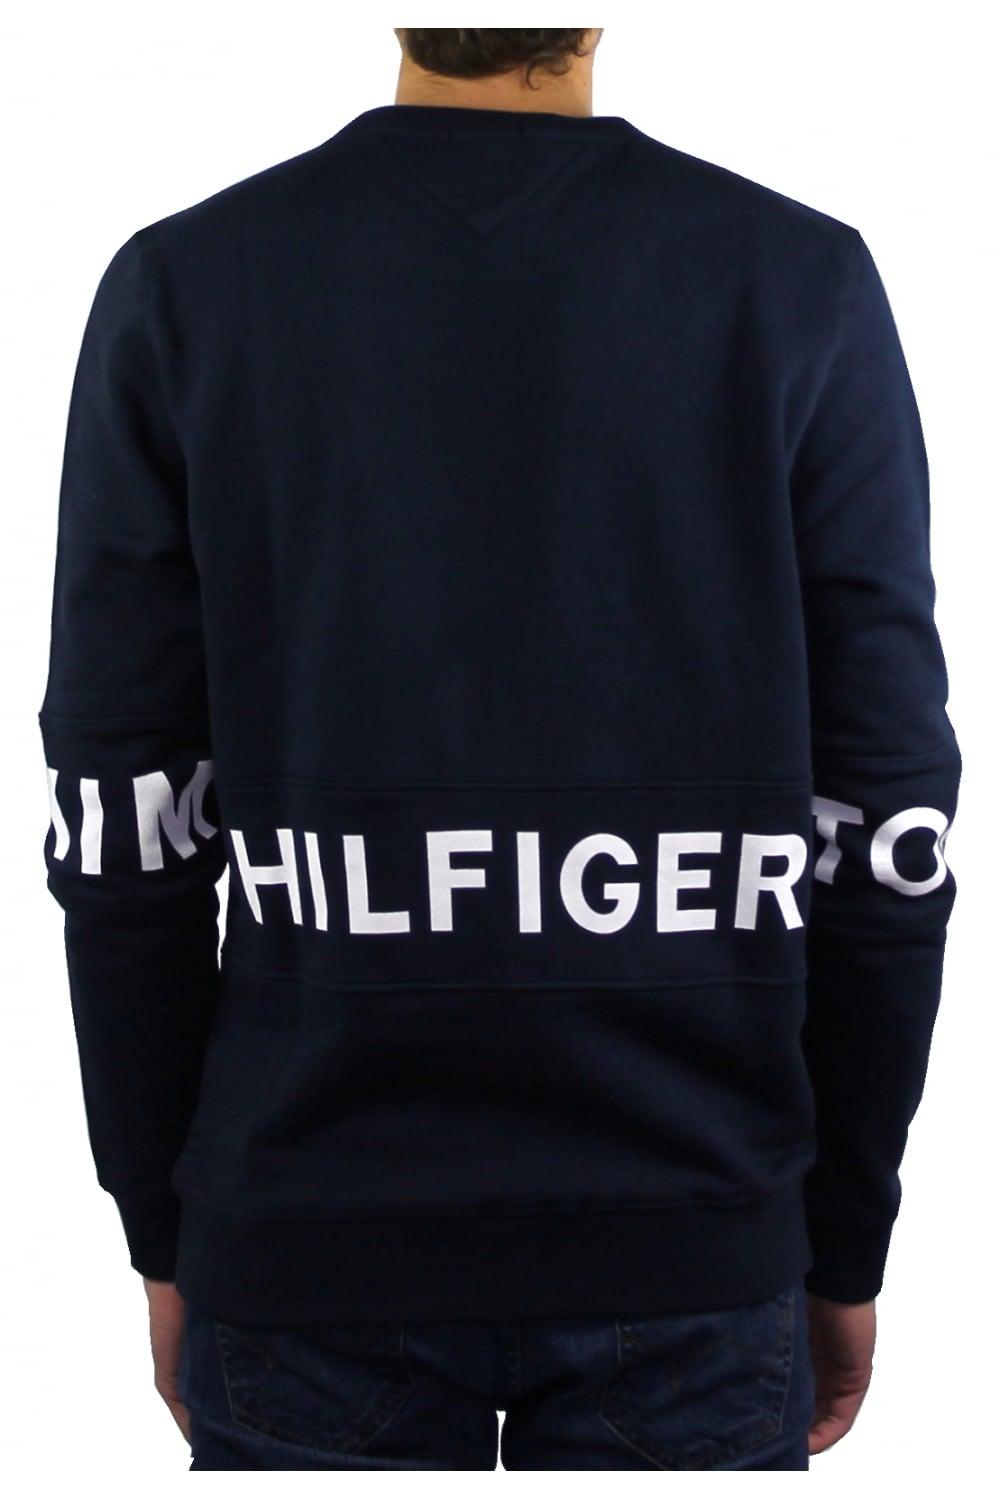 hilfiger hoodie vintage 45 images 1000 ideas about. Black Bedroom Furniture Sets. Home Design Ideas